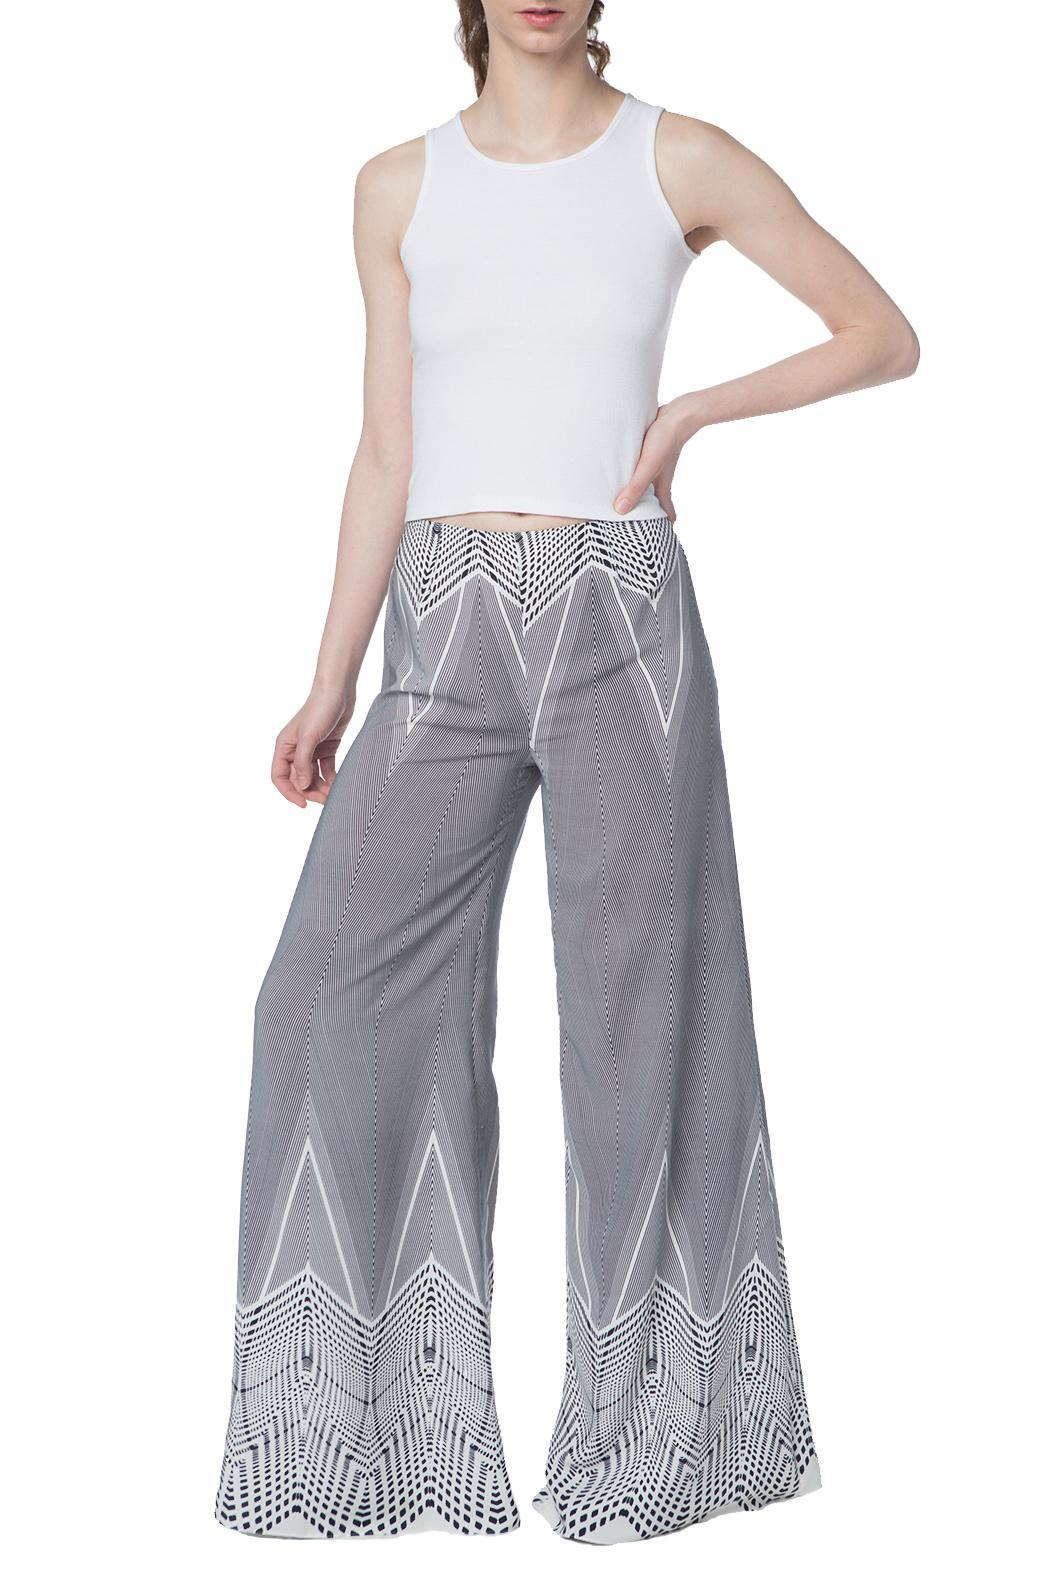 OHLENDORF atelier Graphic Palazzo Pant - Main Image